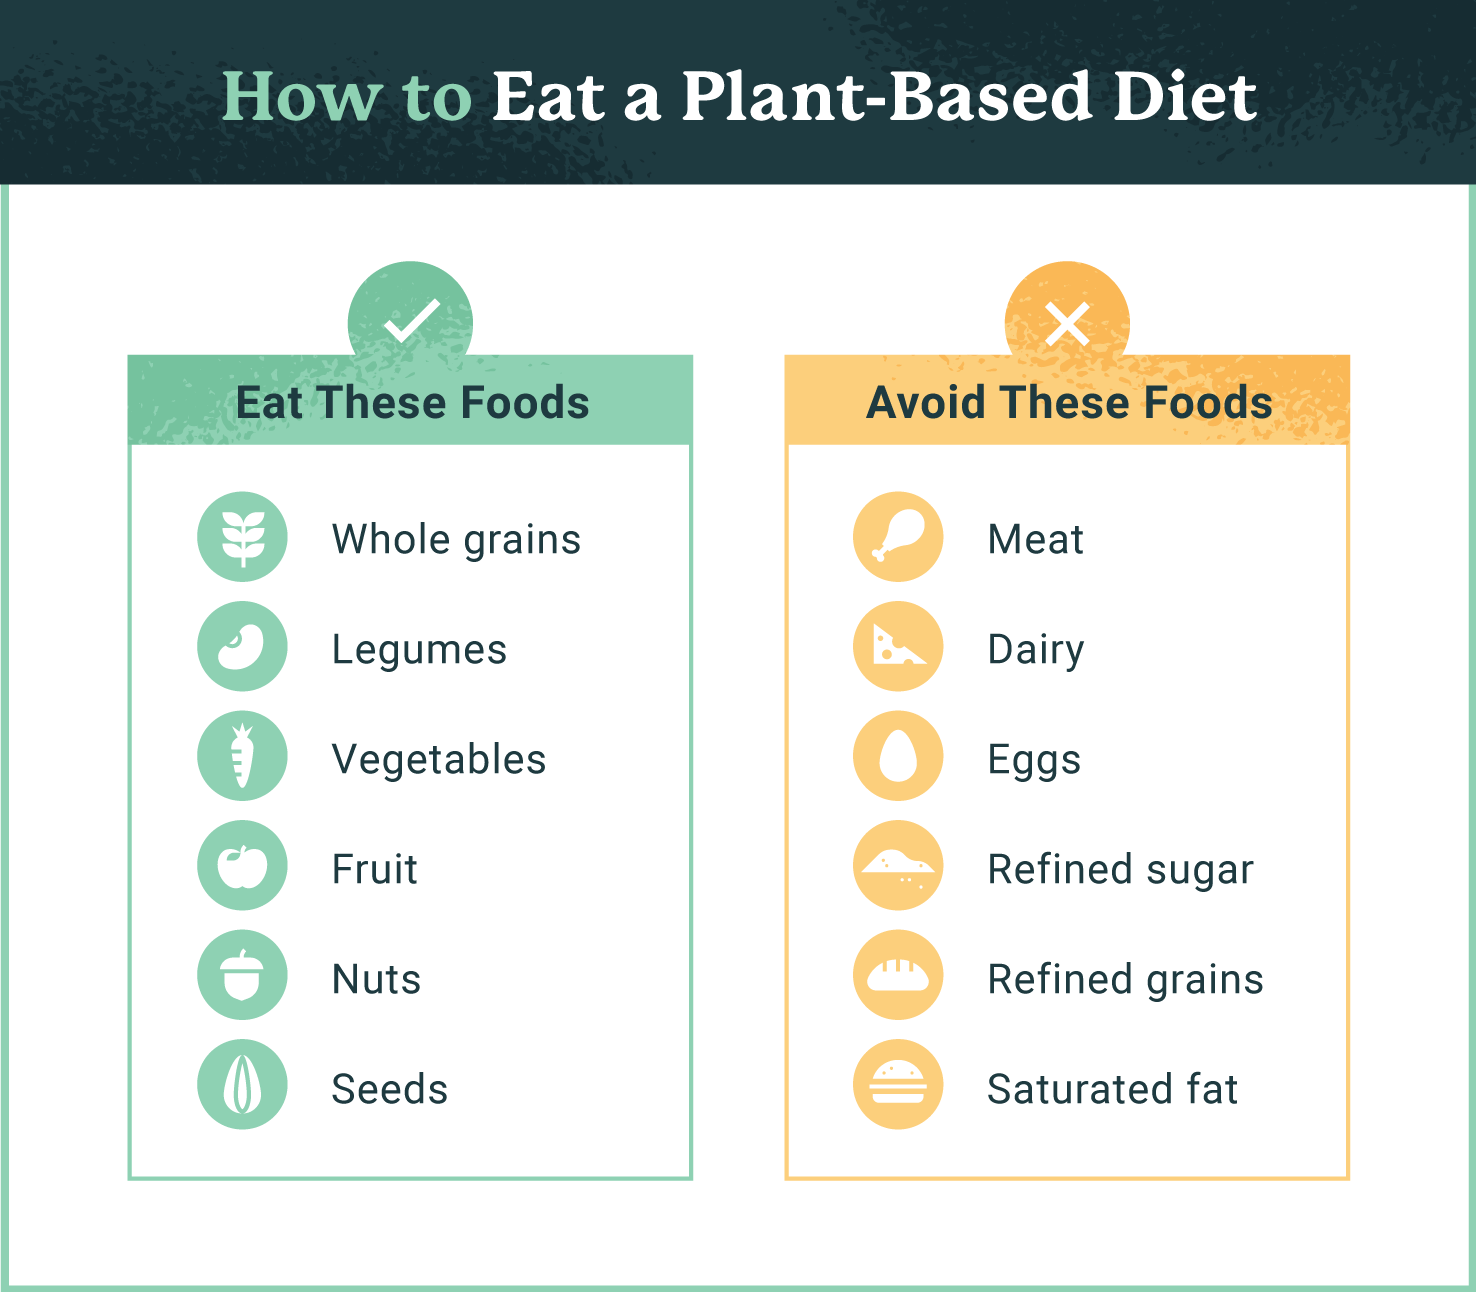 list of foods to avoid and foods to eat when eating plant based